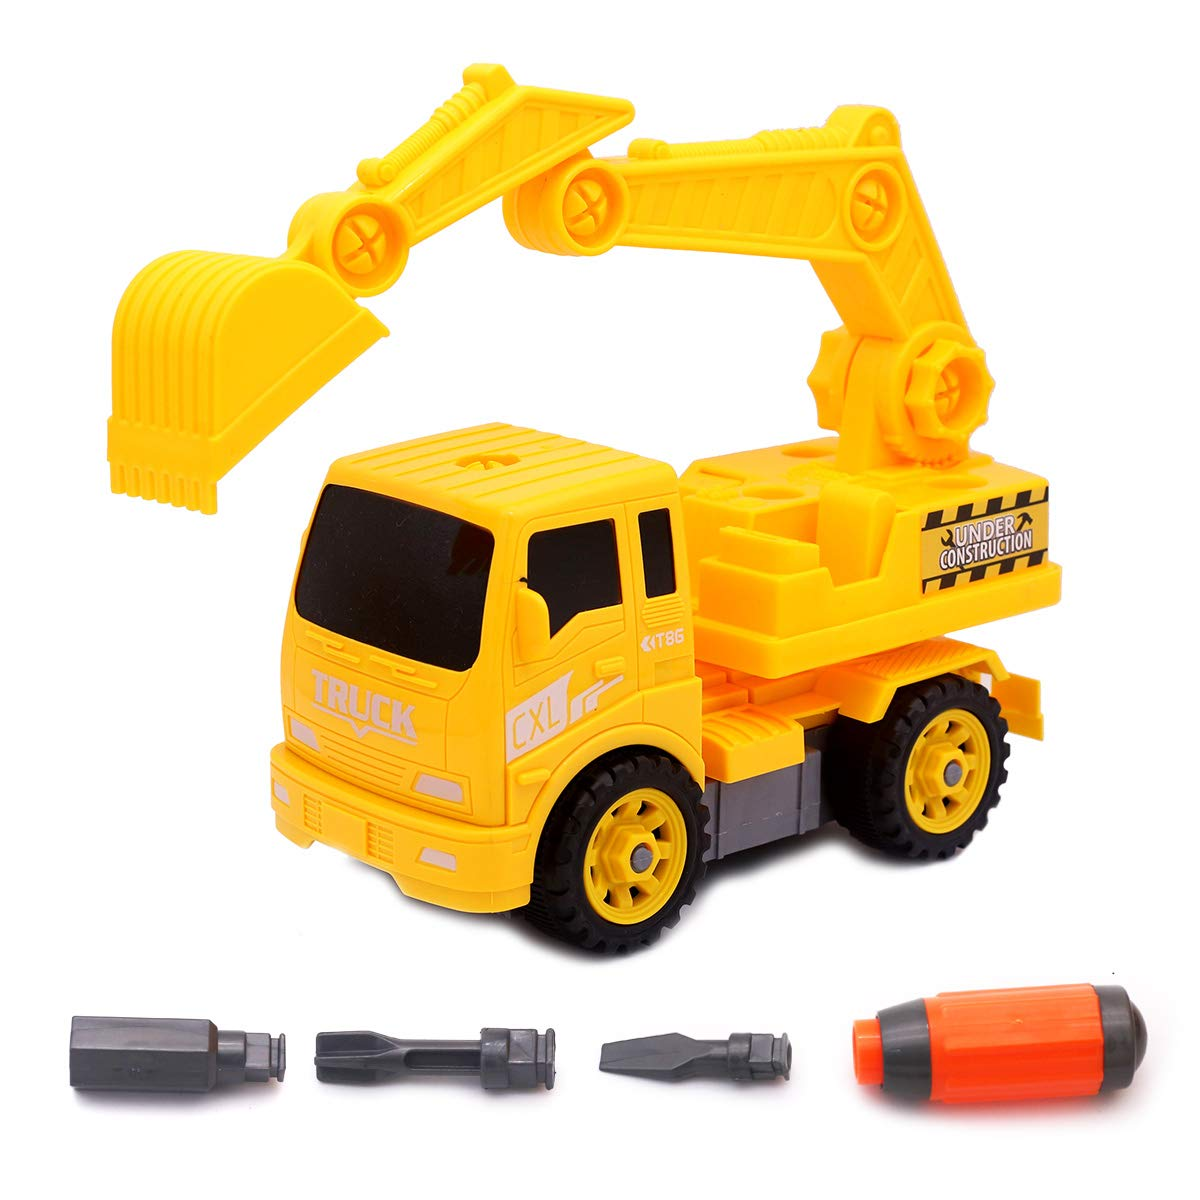 CXL Take Apart Excavator Assemble Disassemble Truck with Tools Construction Kit Assembly DIY Toys for Kids Boys 3 Years Old Canxinlong Toys Factory .